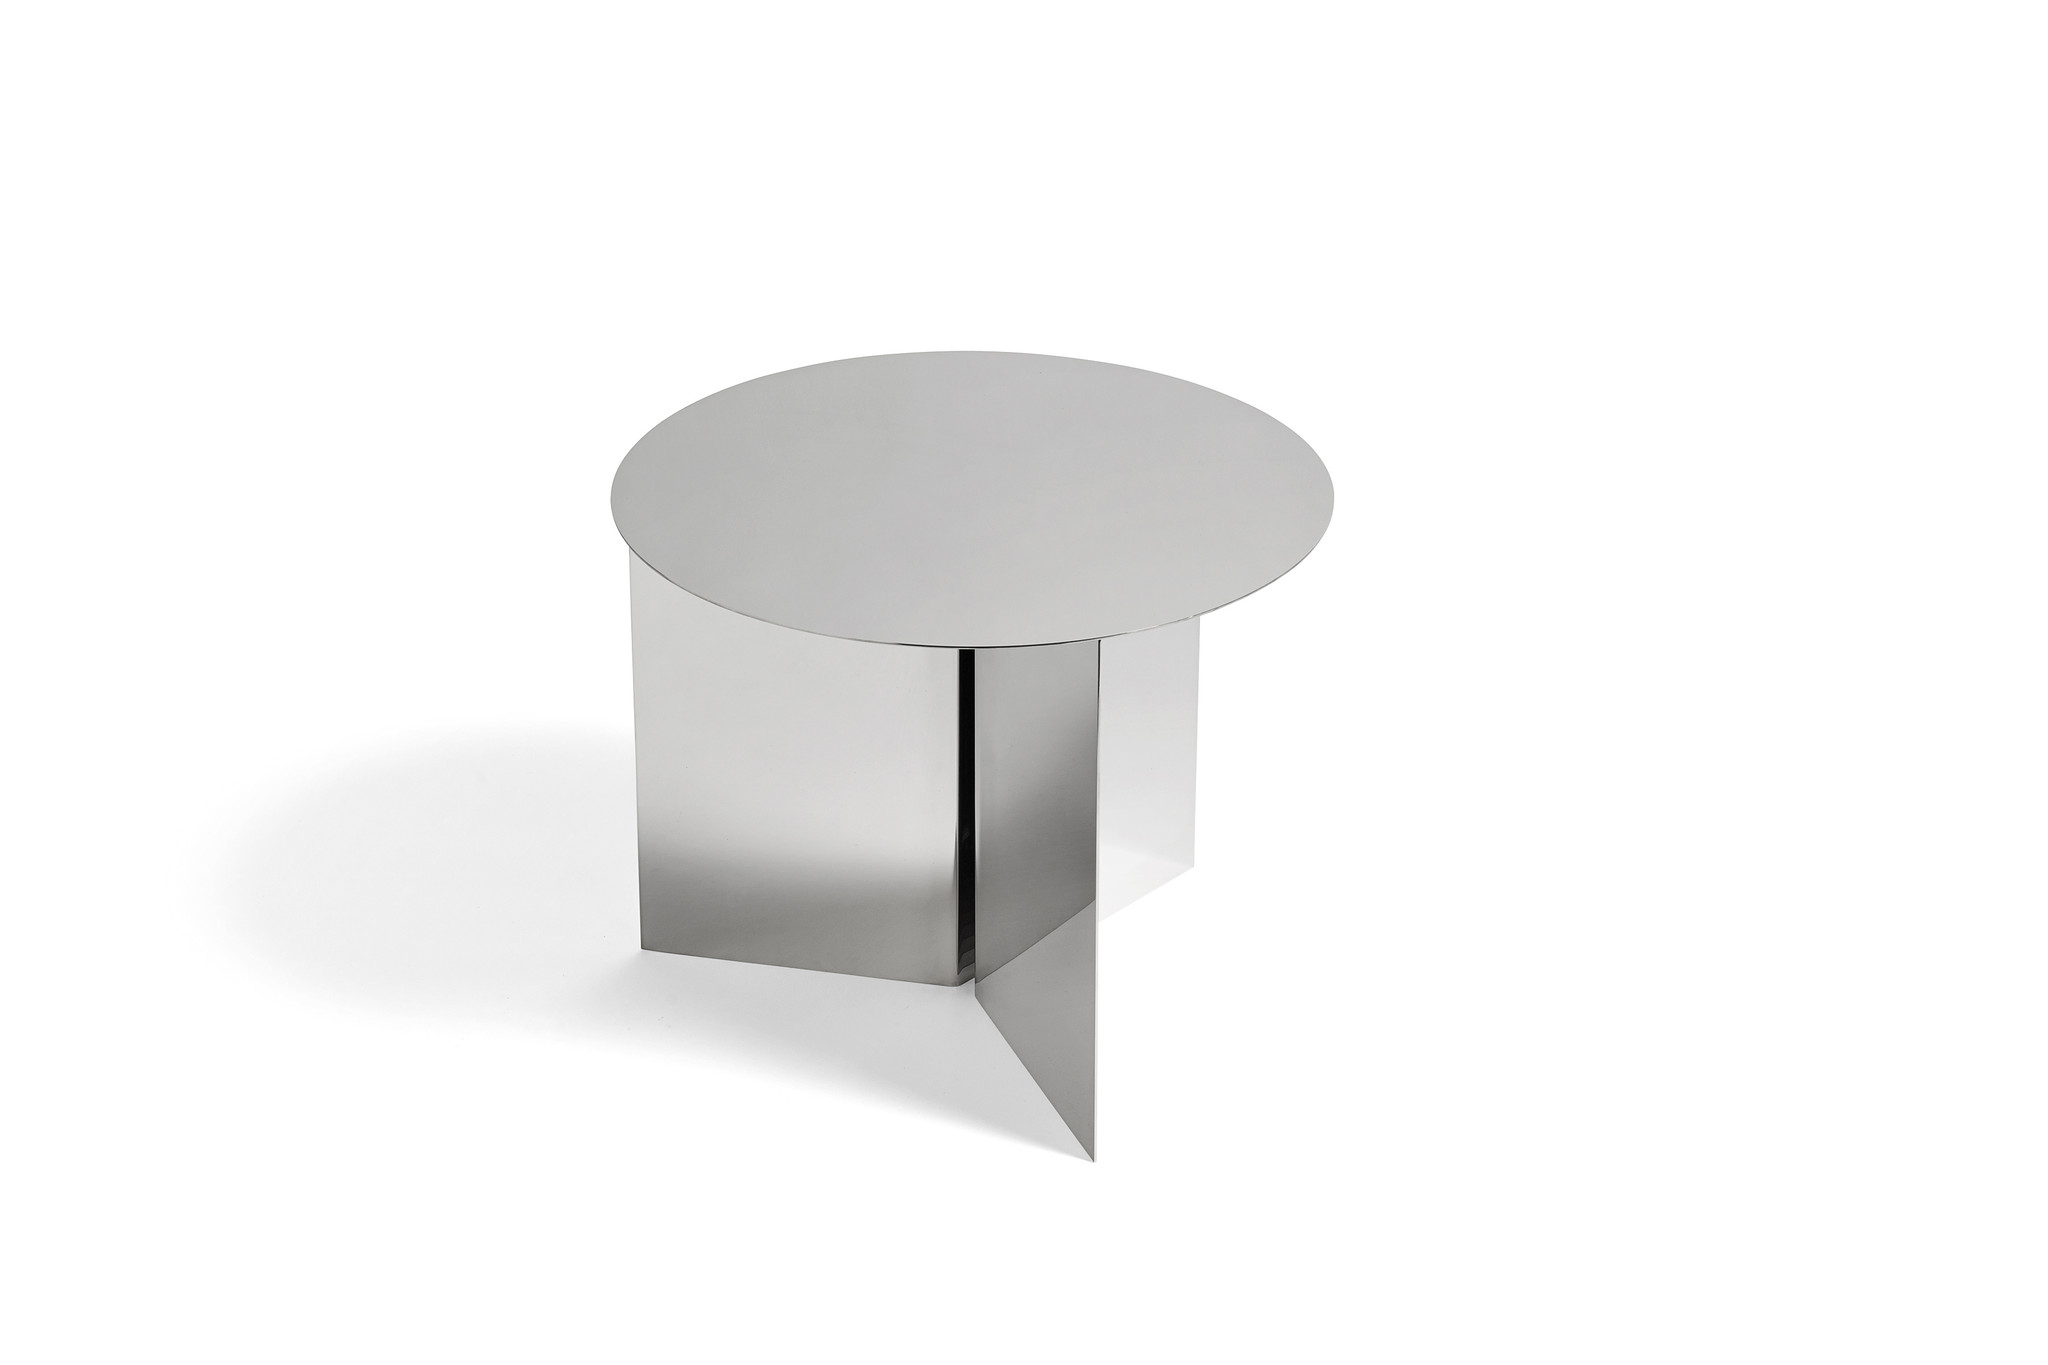 Slit table - Round side table-5